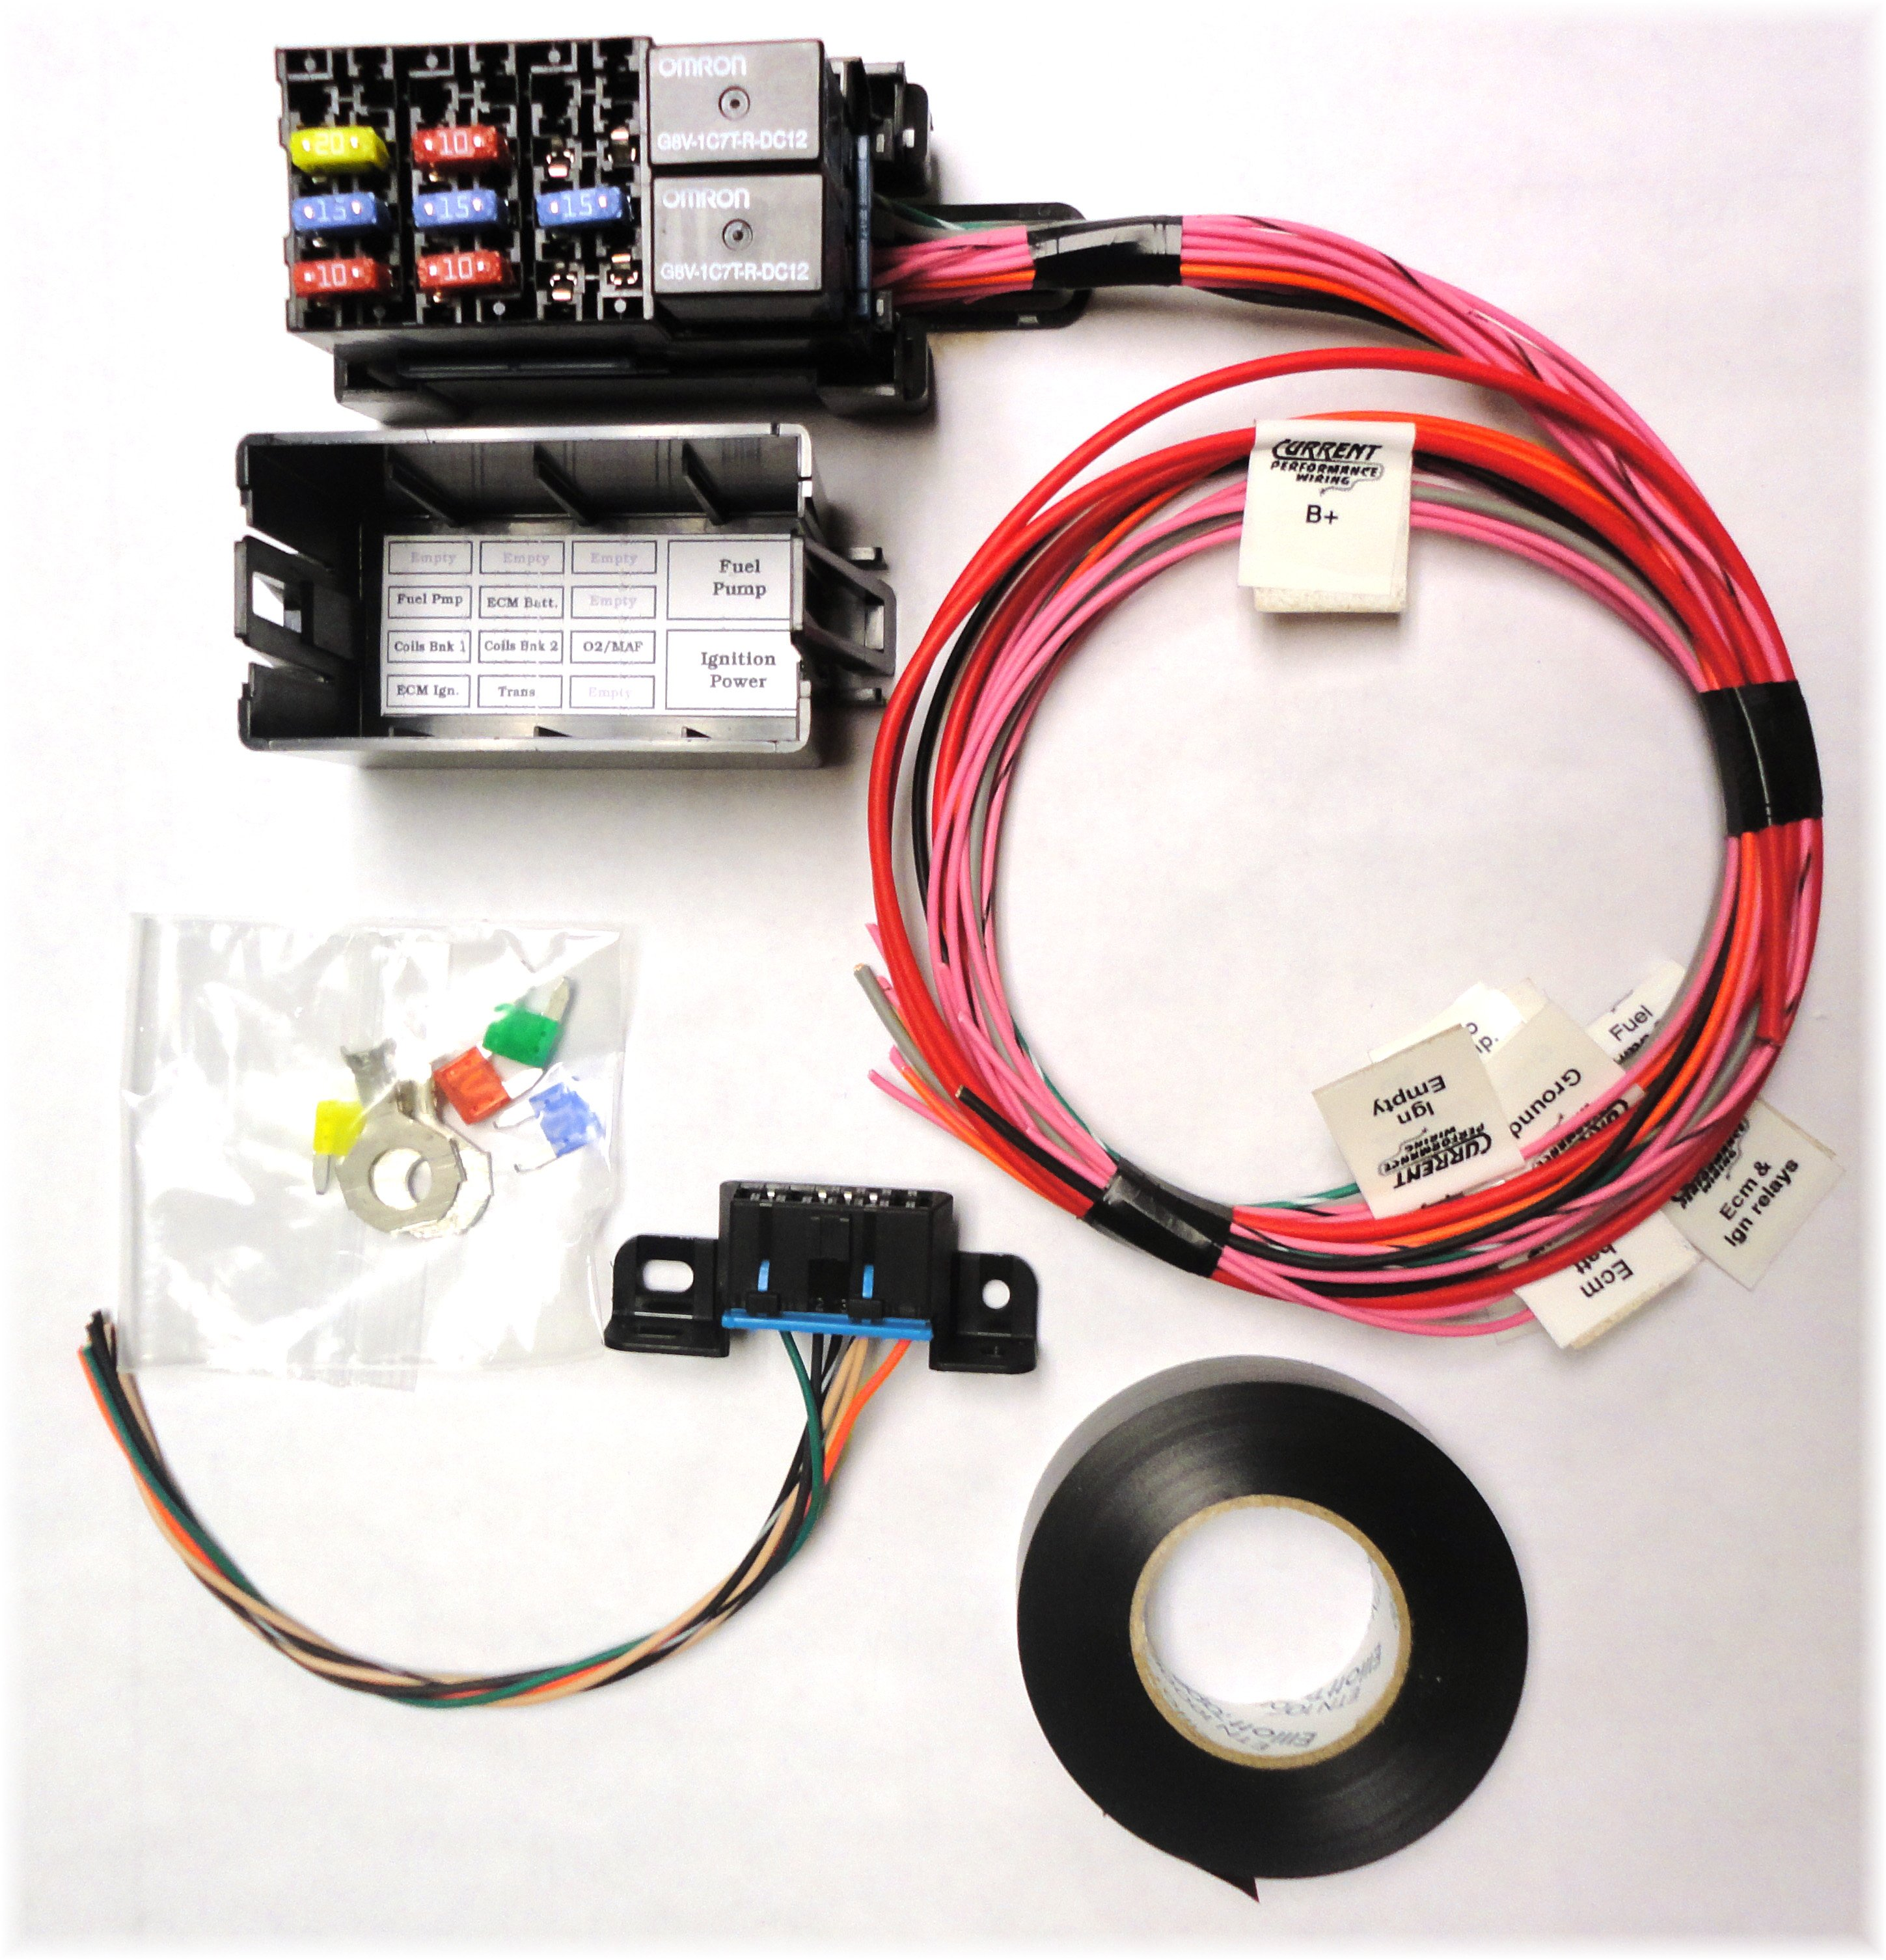 Astounding Diy Ls1 Wiring Harness Wiring Diagram Data Wiring Cloud Biosomenaidewilluminateatxorg